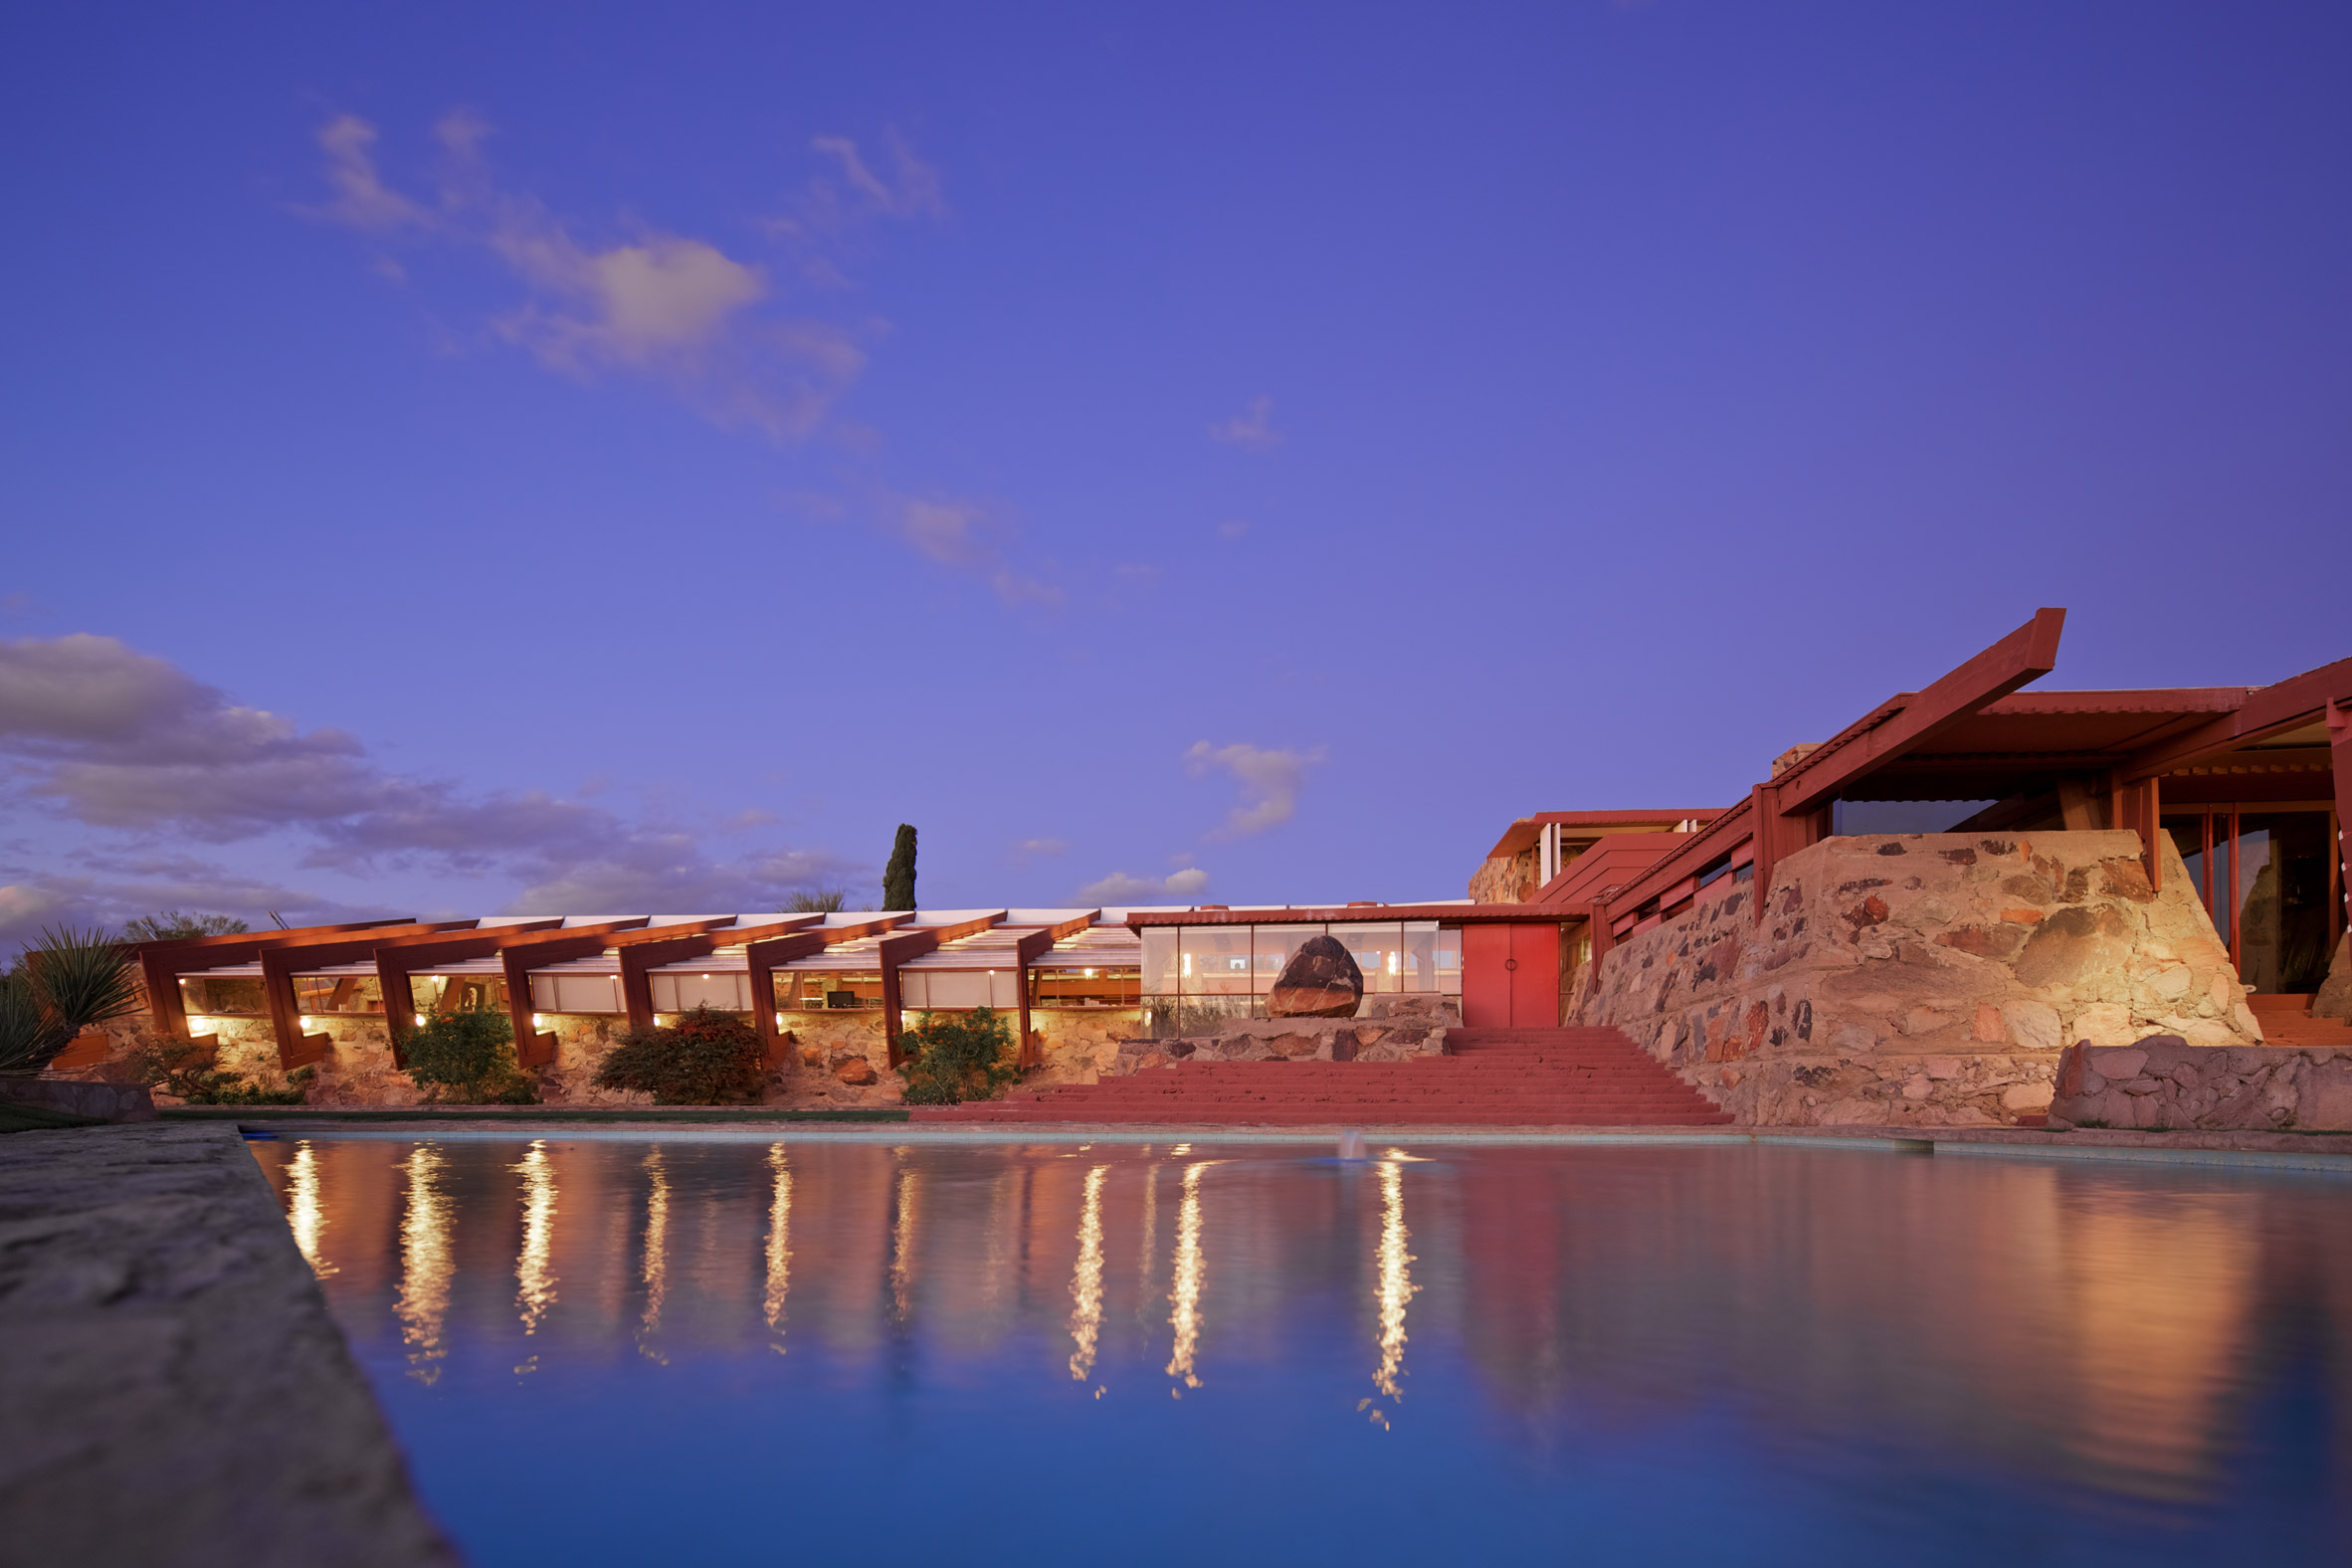 Frank Lloyd Wright's Taliesin West was designed as a desert retreat for himself and his students